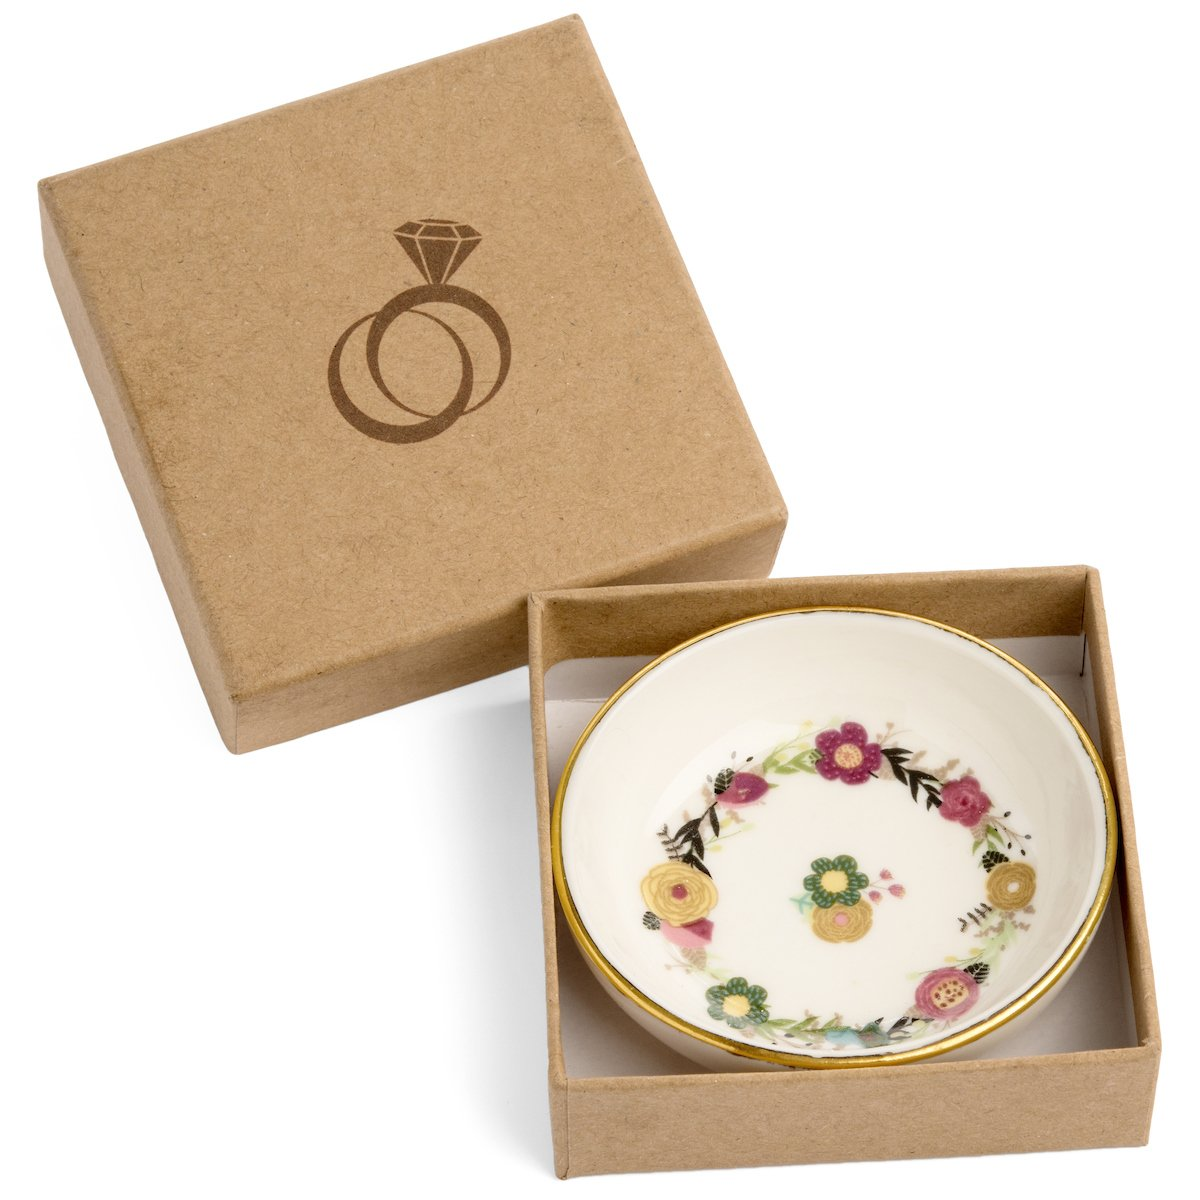 SPIRA Designs Floral Jewelry Ring Dish in Gift Box